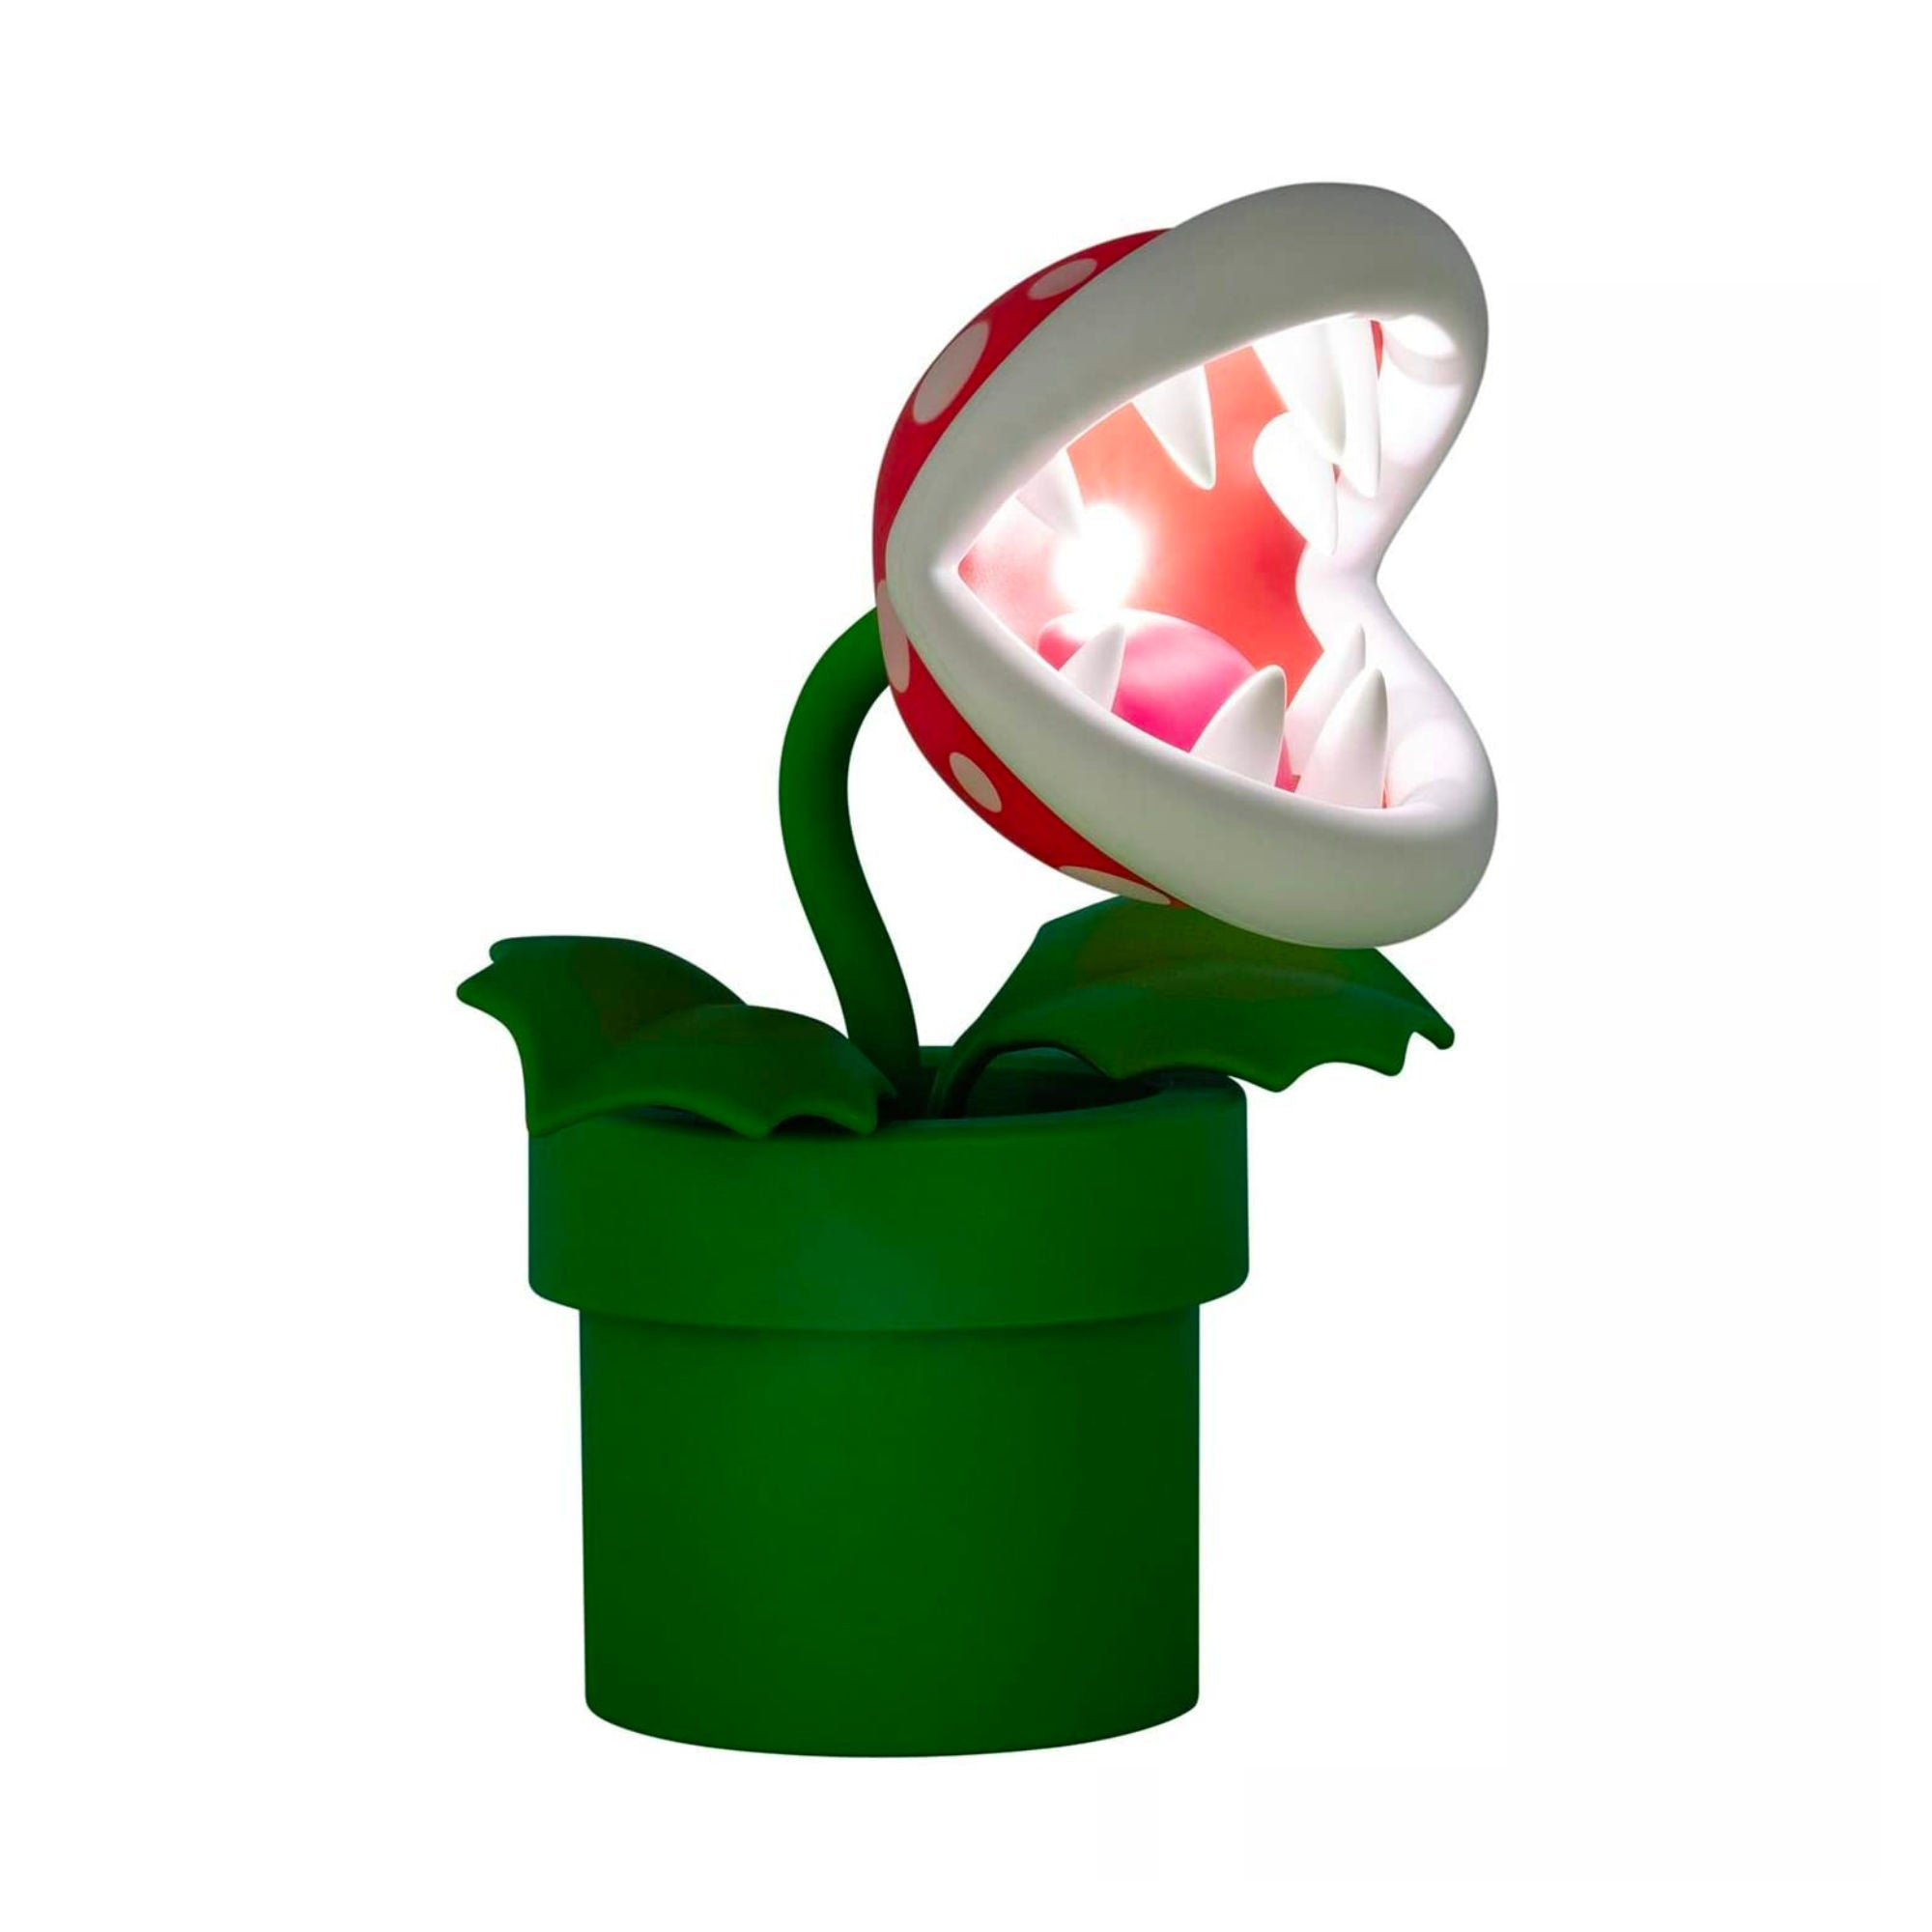 Paladone Super Mario Piranha Plant Posable Light